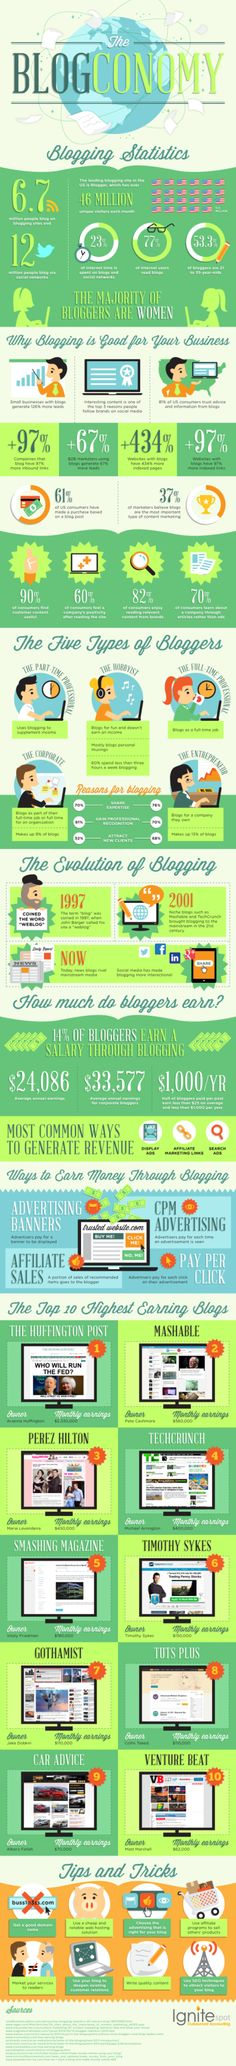 The Blogconomy - Blogging Statistics [Infographic]